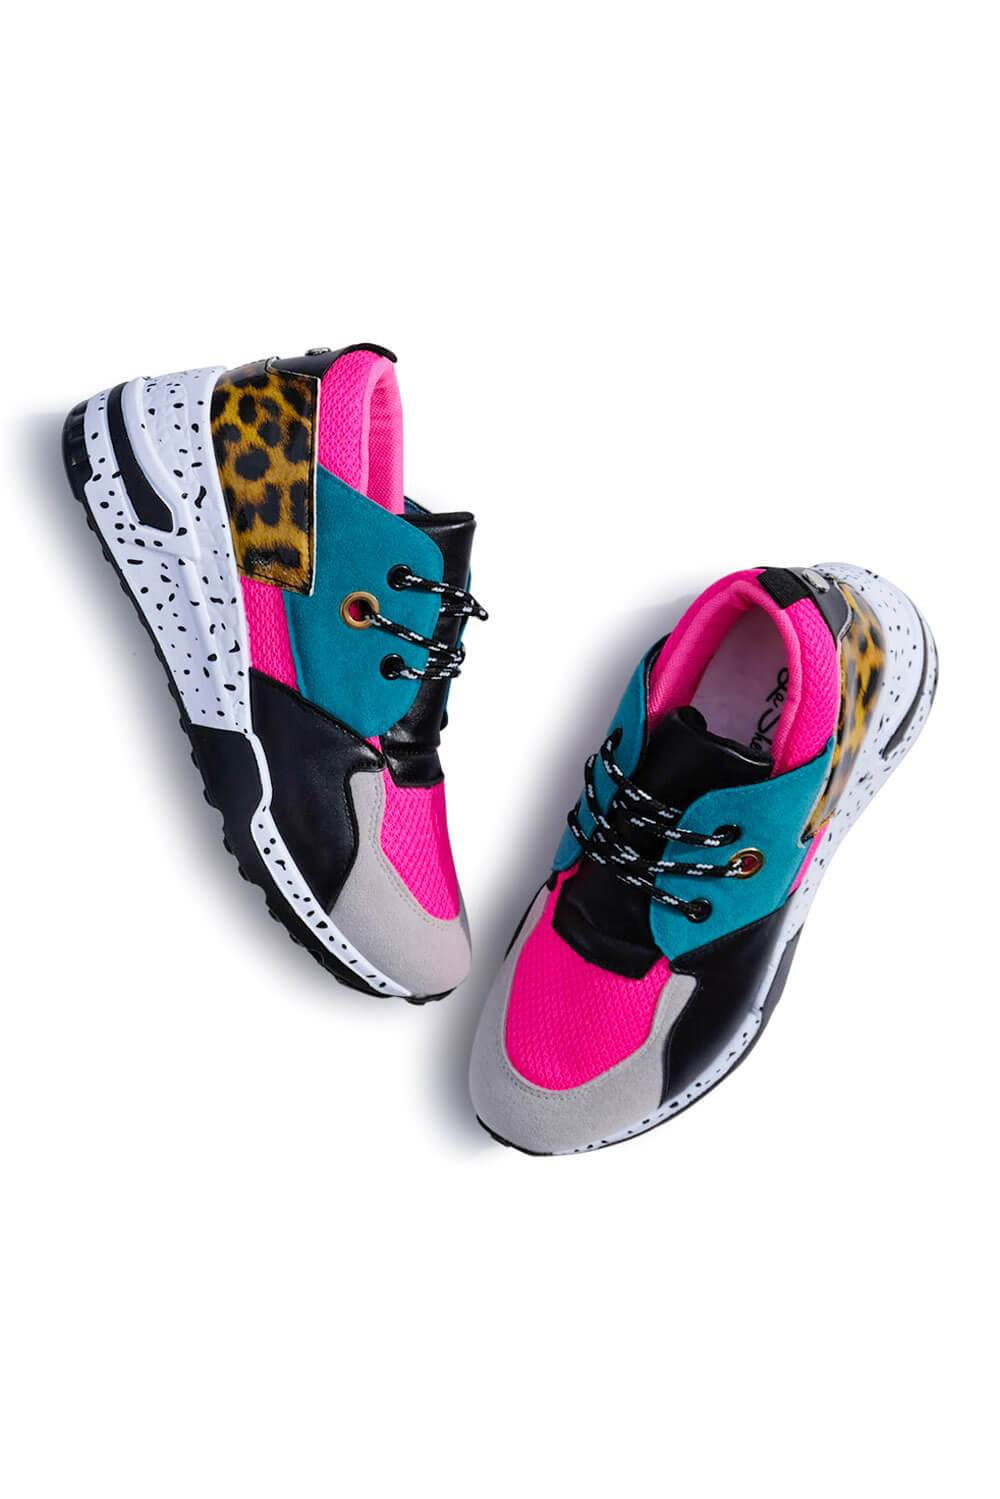 Coco Neon Patchwork Sneakers Hot Pink Leopard MILK  MONEY